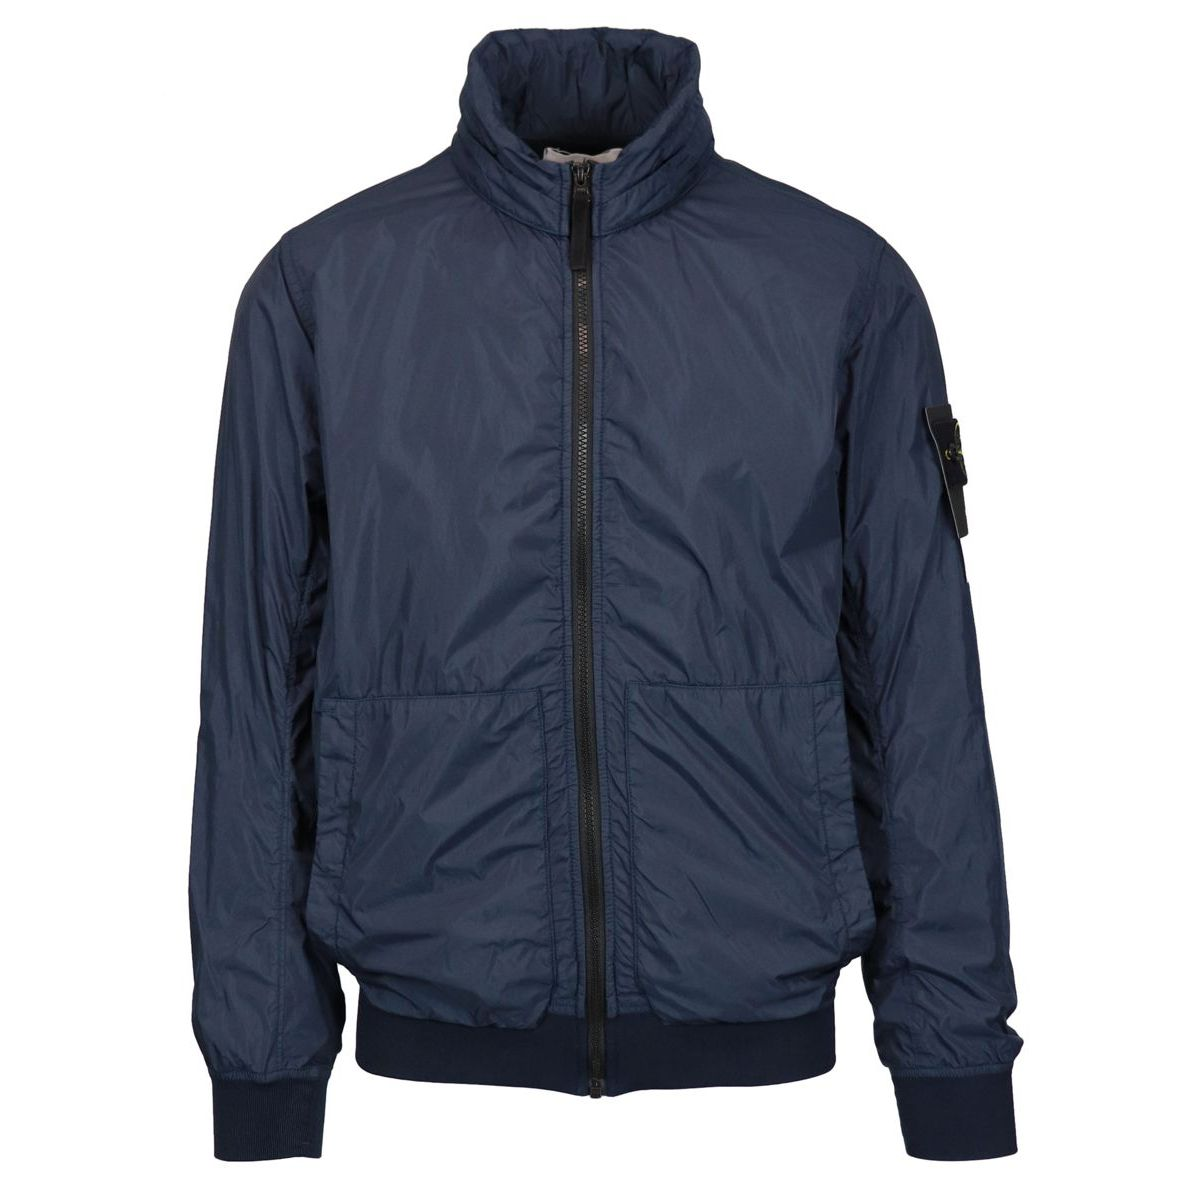 Garment Arment Dyed Crinkle nylon jacket Blue Stone Island